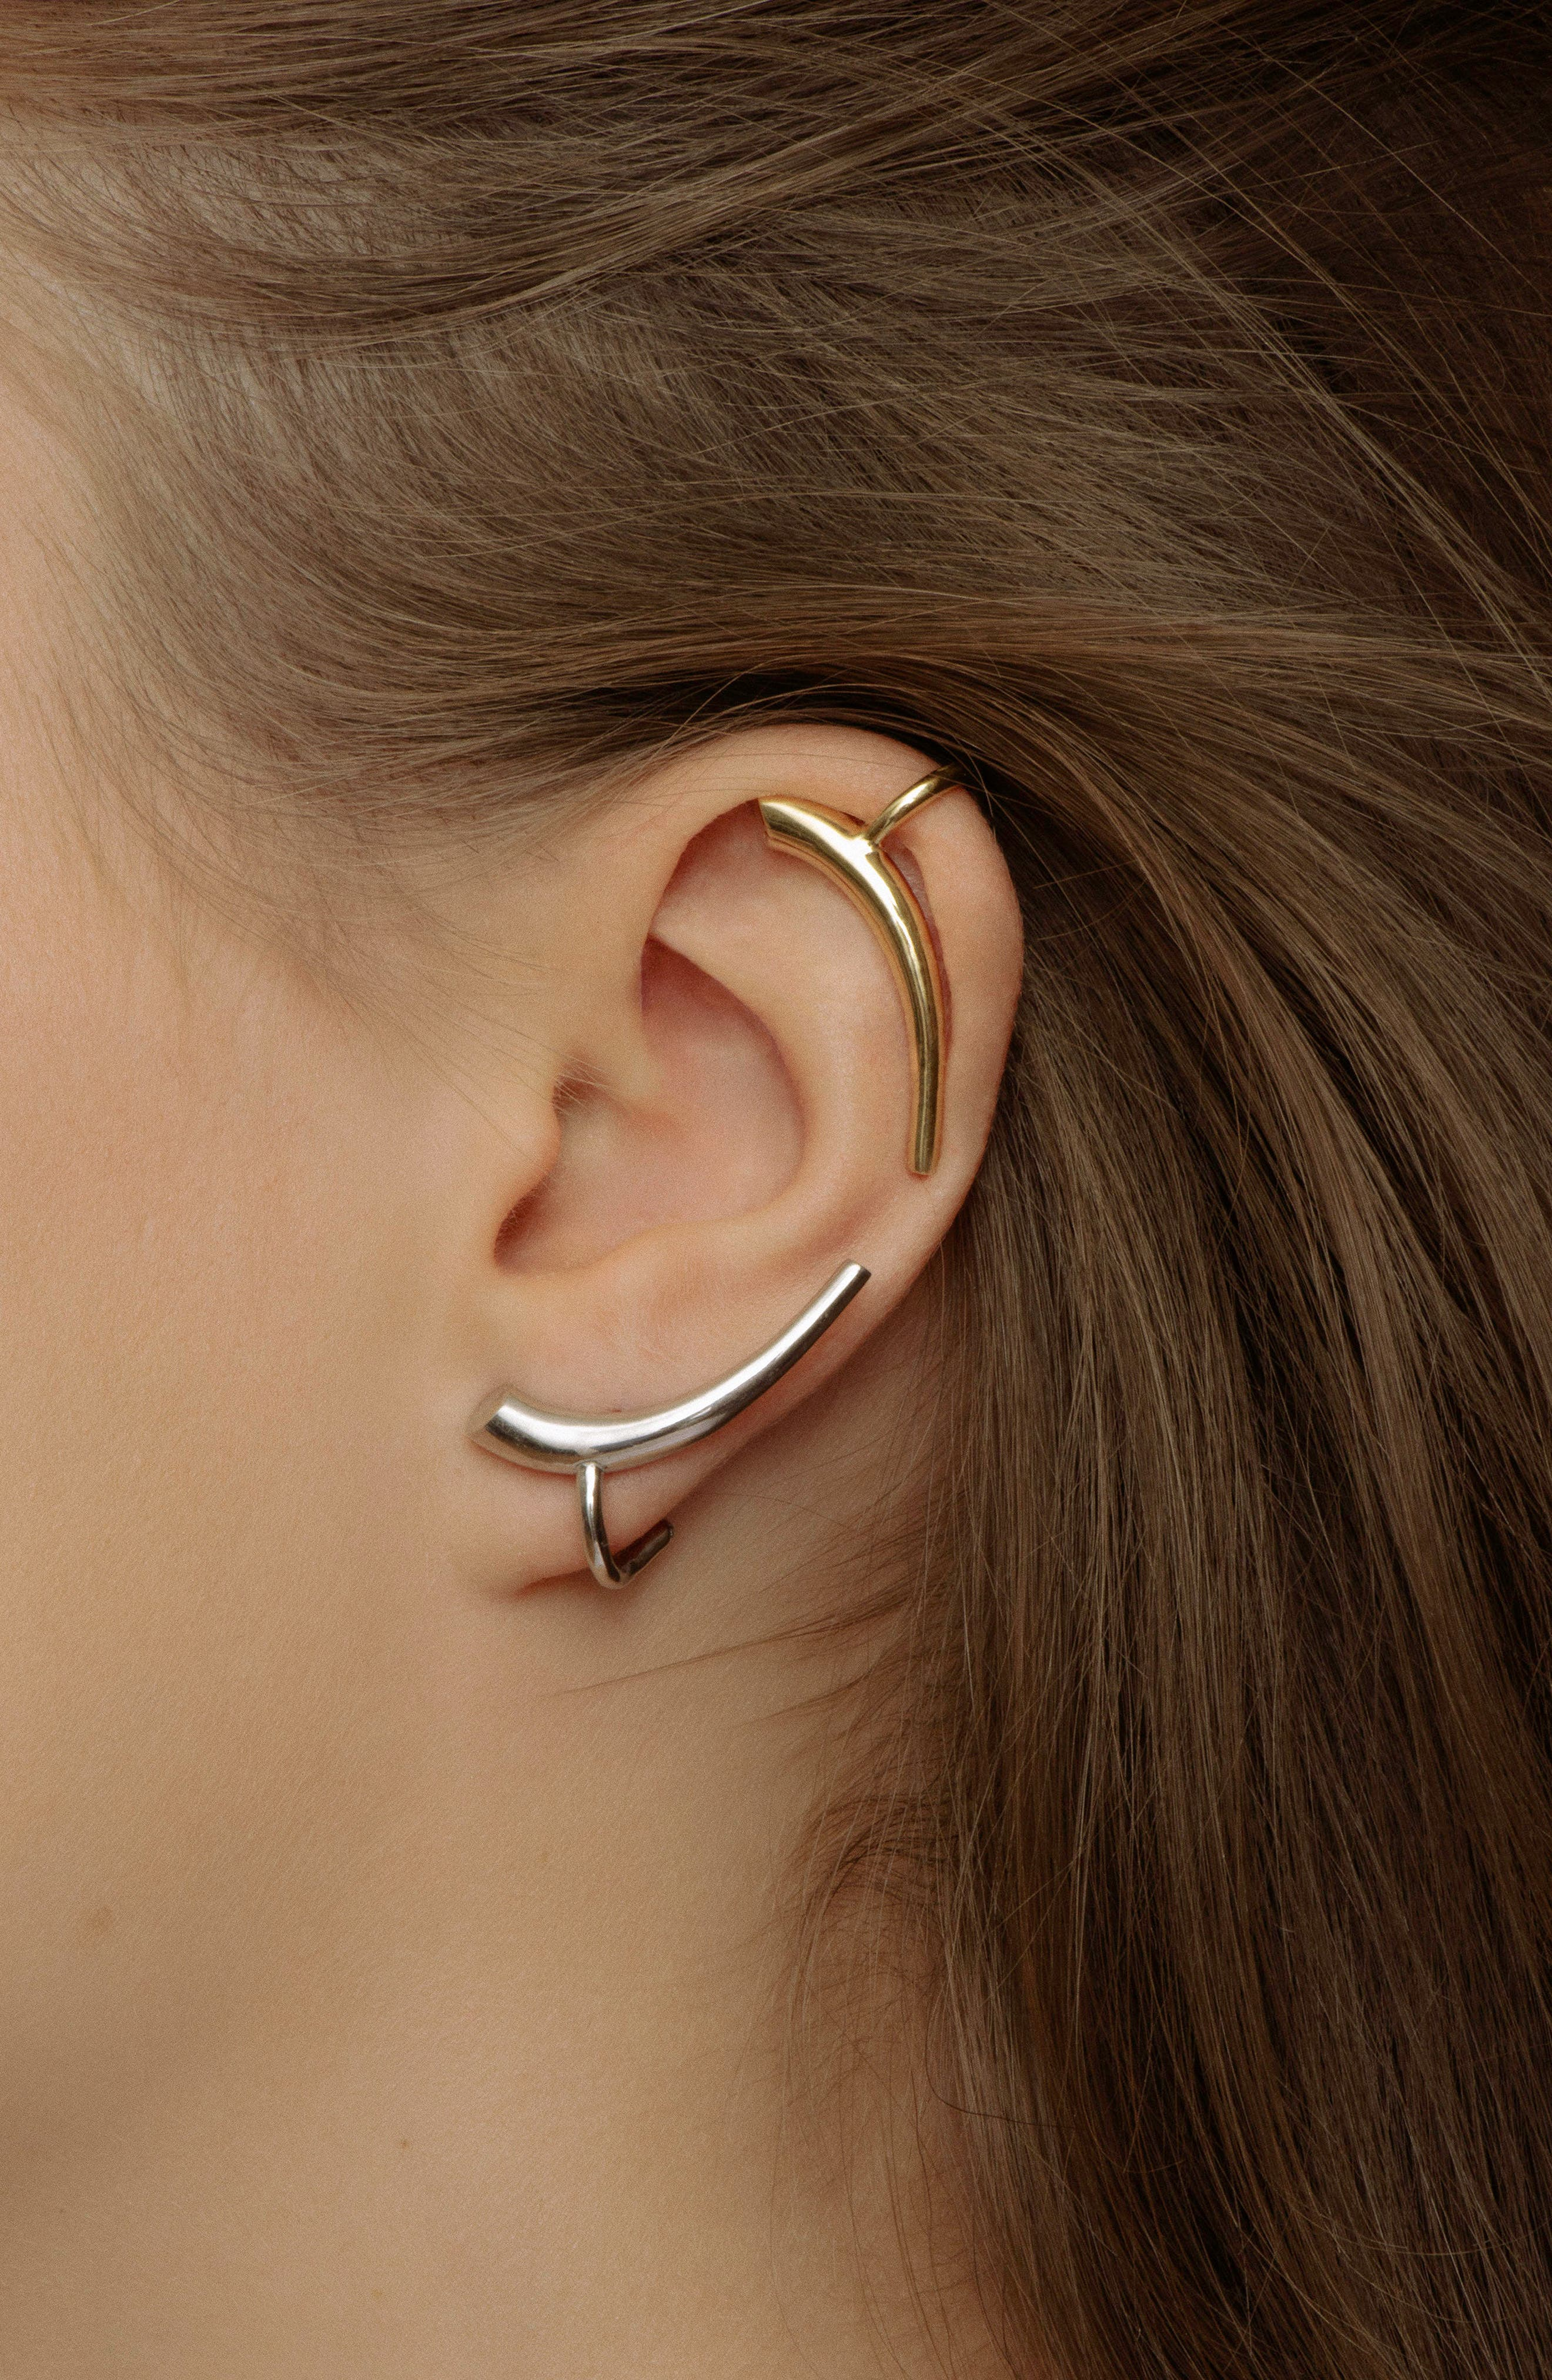 Helix Silver Ear Cuffs,                             Alternate thumbnail 2, color,                             040